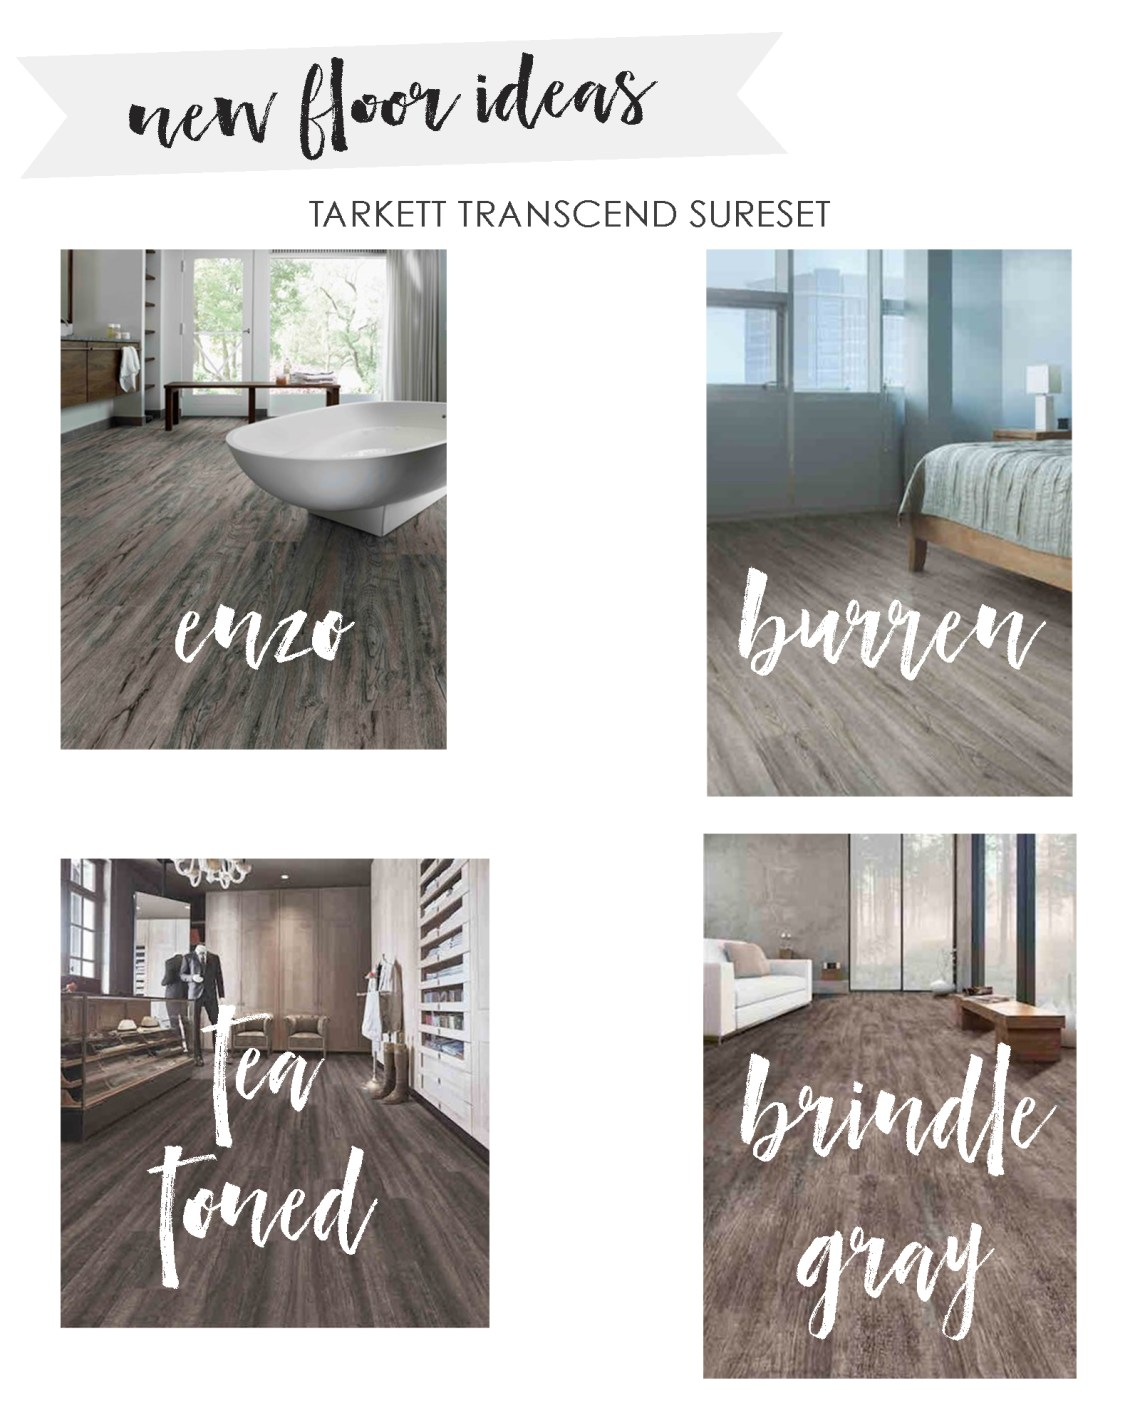 Vinyl Plank Flooring - New Flooring - Vinyl Flooring Wood Floors by Tarkett - Home Design via Misty Nelson frostedblog.com @frostedevents